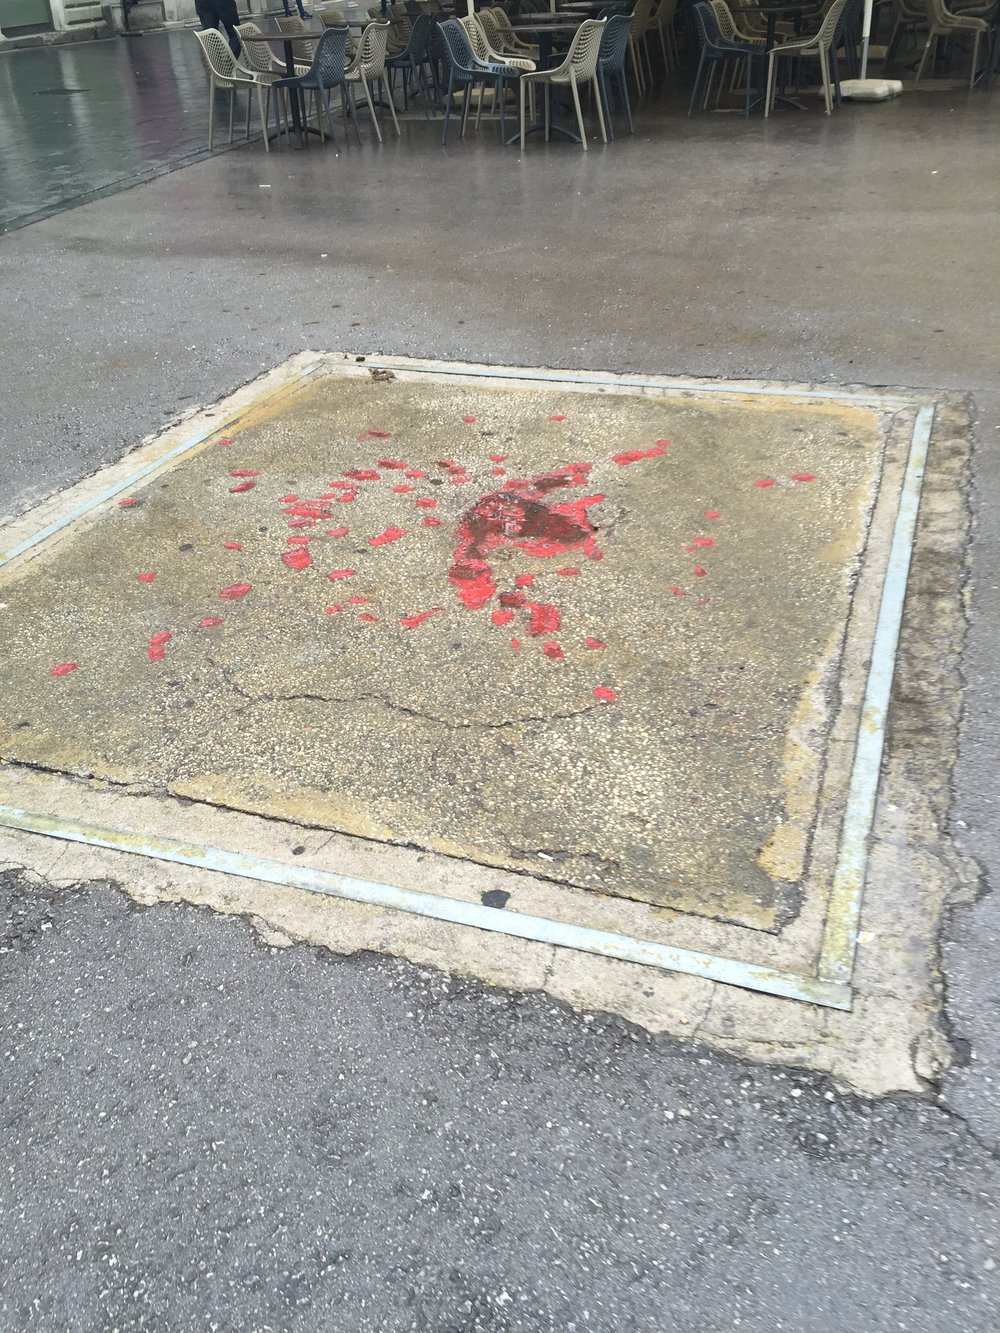 A Sarajevo Rose: marks left by mortar shells have been filled with red resin in memoriam of the siege of Sarajevo which lasted four years, making it the longest siege of a city in modern hisotry.